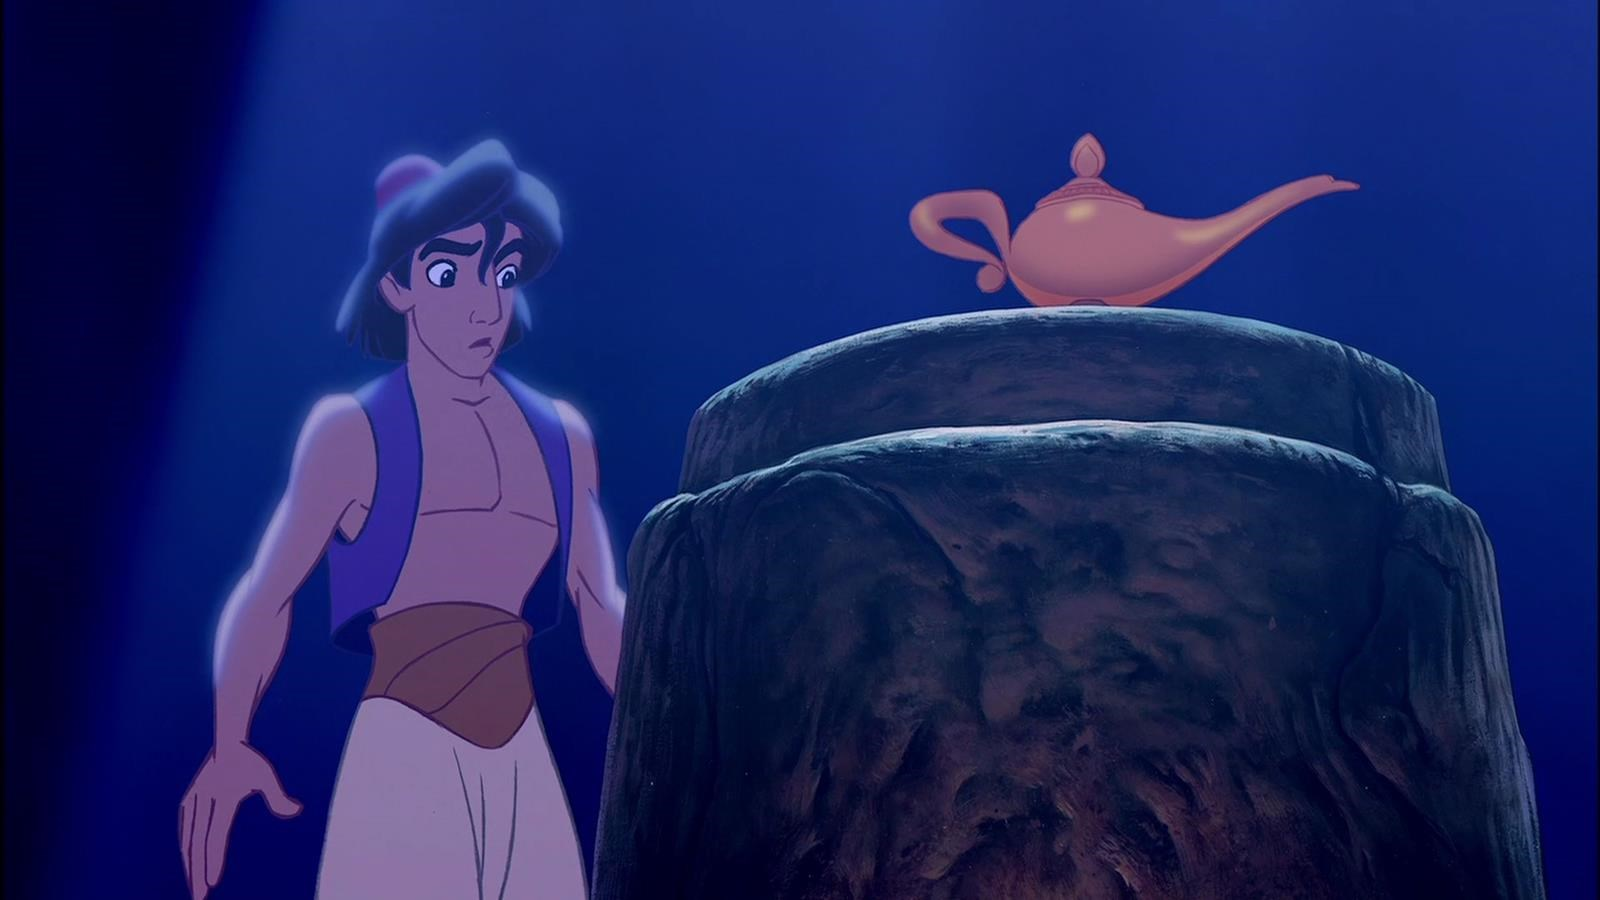 Sparkling first trailer for Disney's live-action Aladdin reboot debuts online